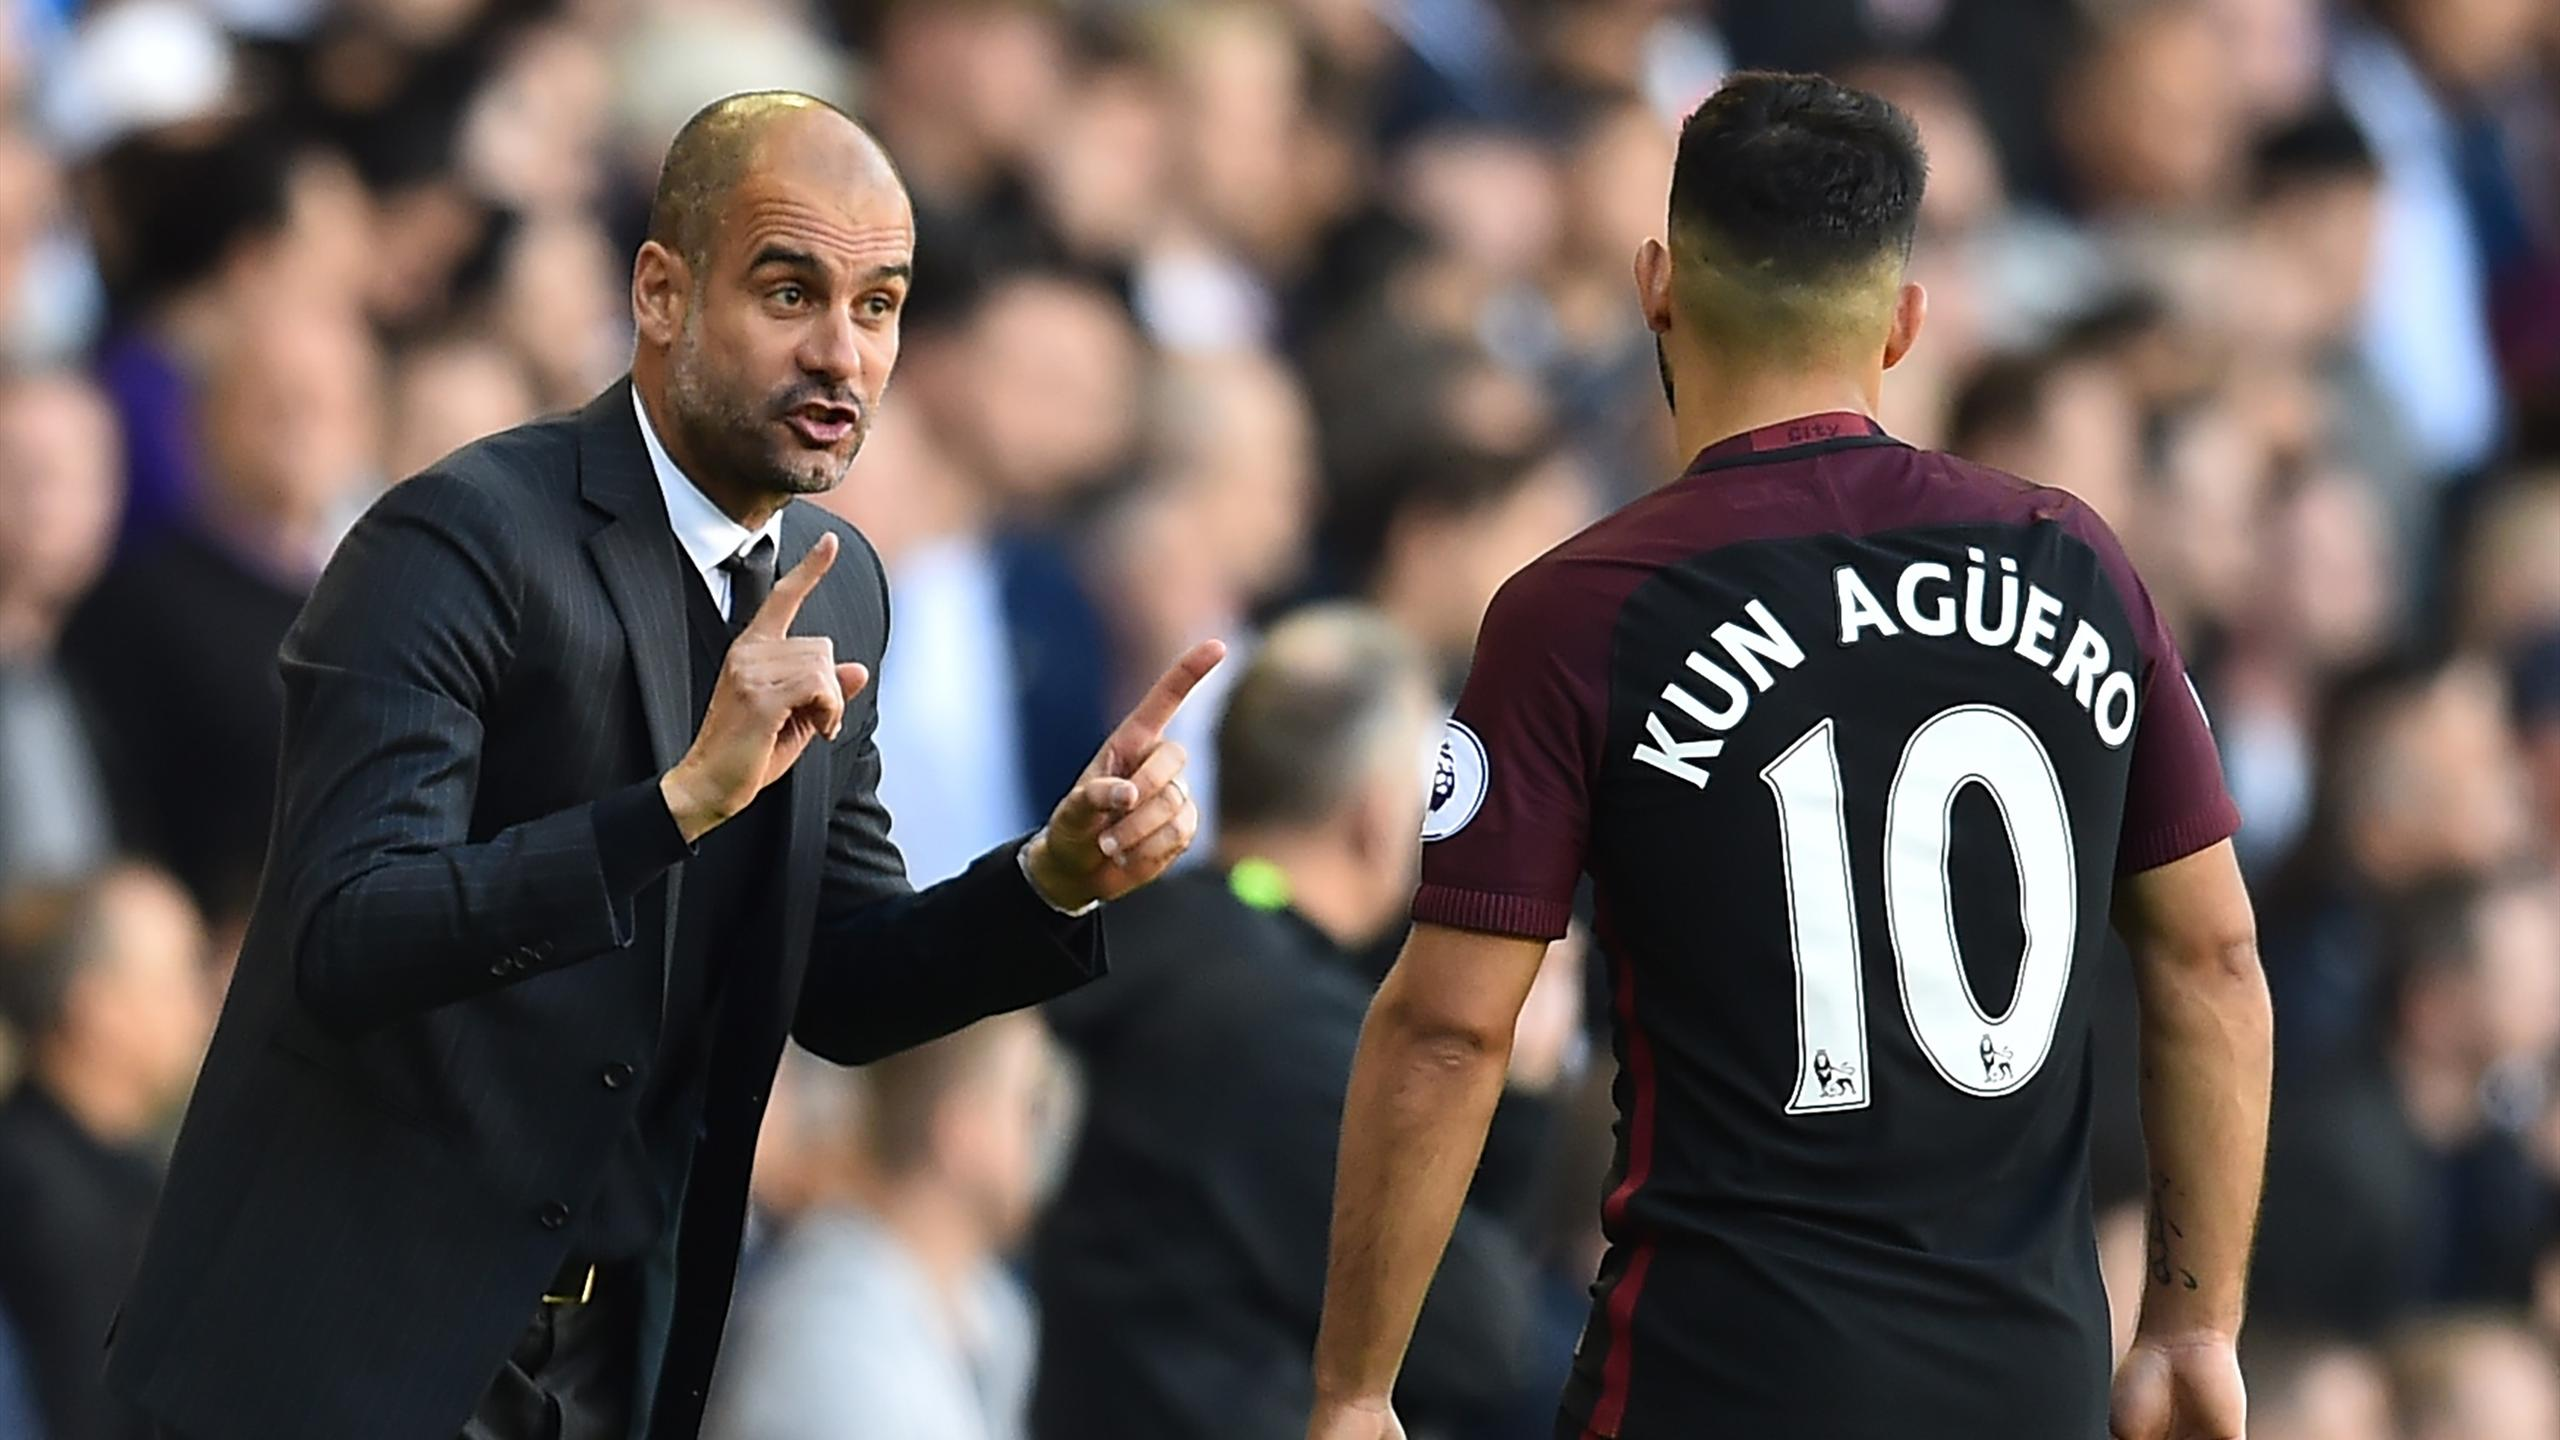 Sergio Aguero and Pep Guardiola of Manchester City